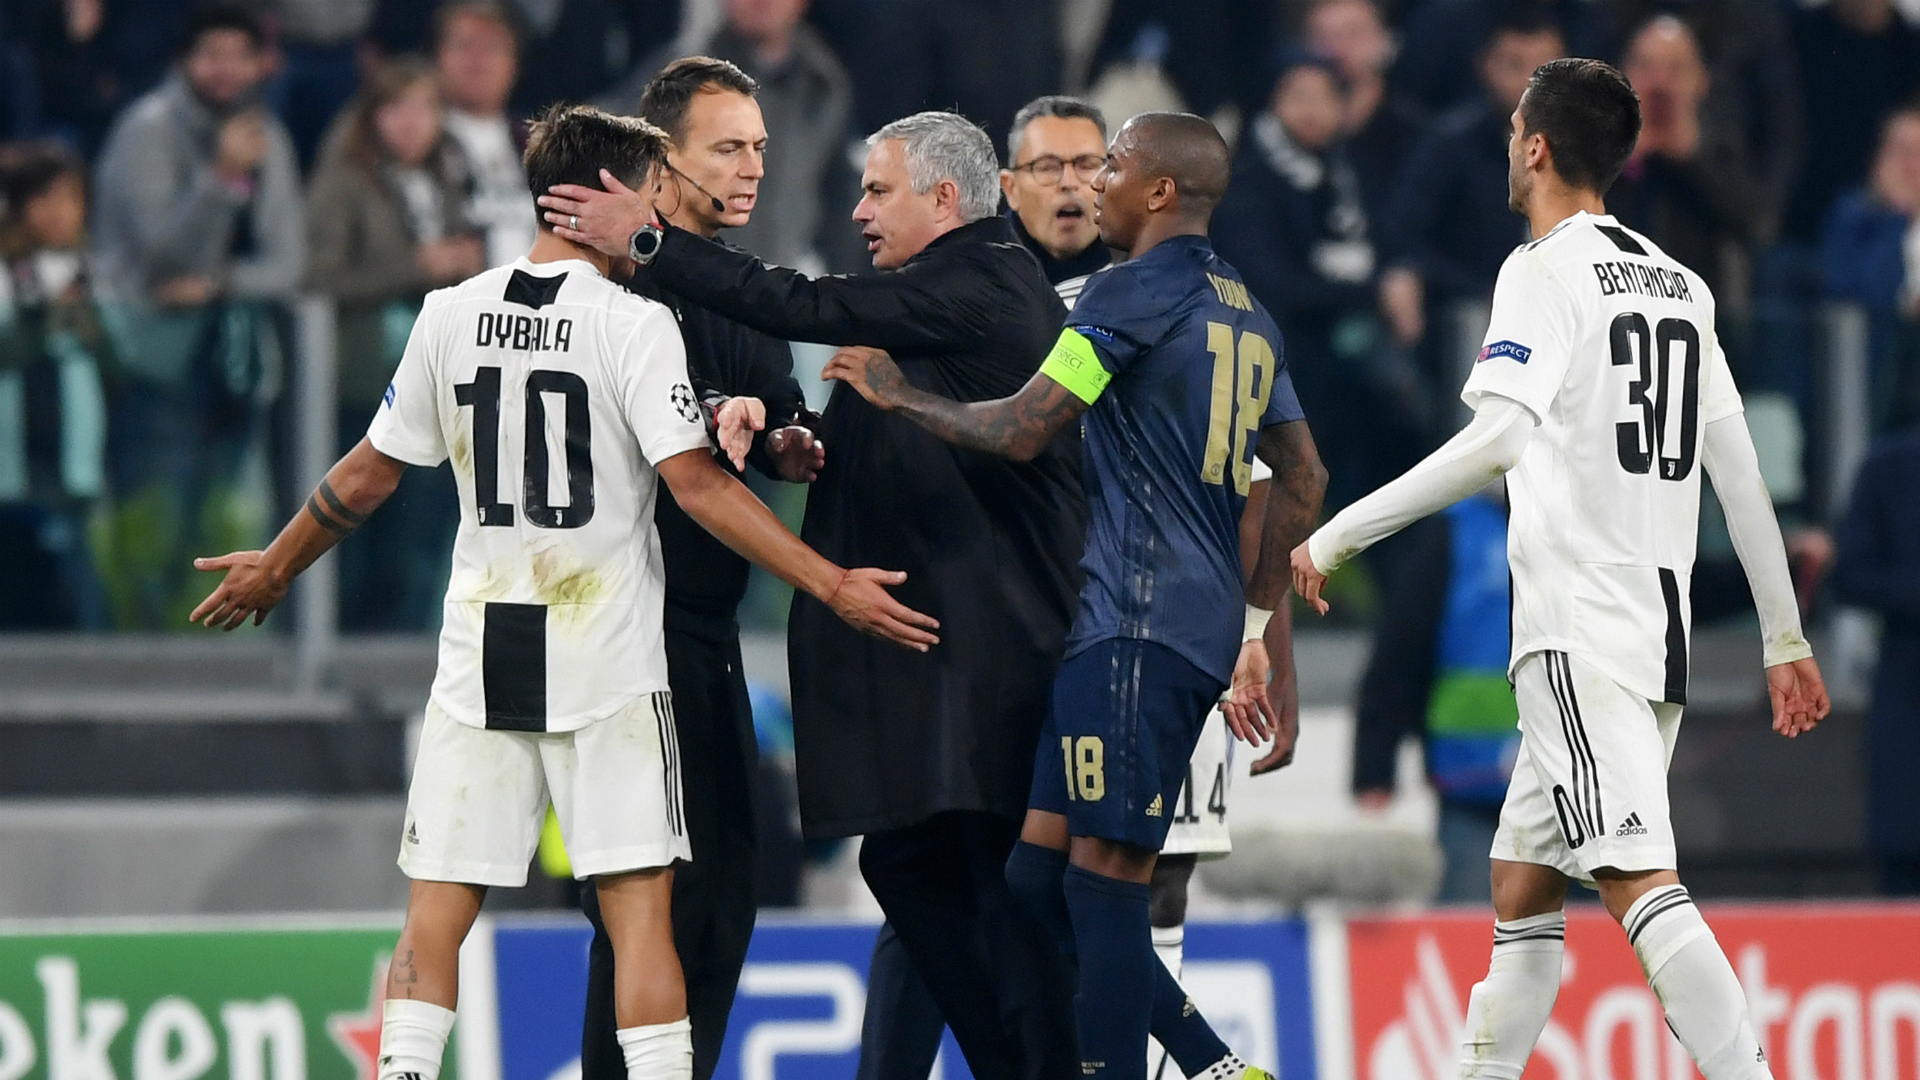 If you tease a lion, it will roar - Spalletti understands Mourinho's Juve taunt